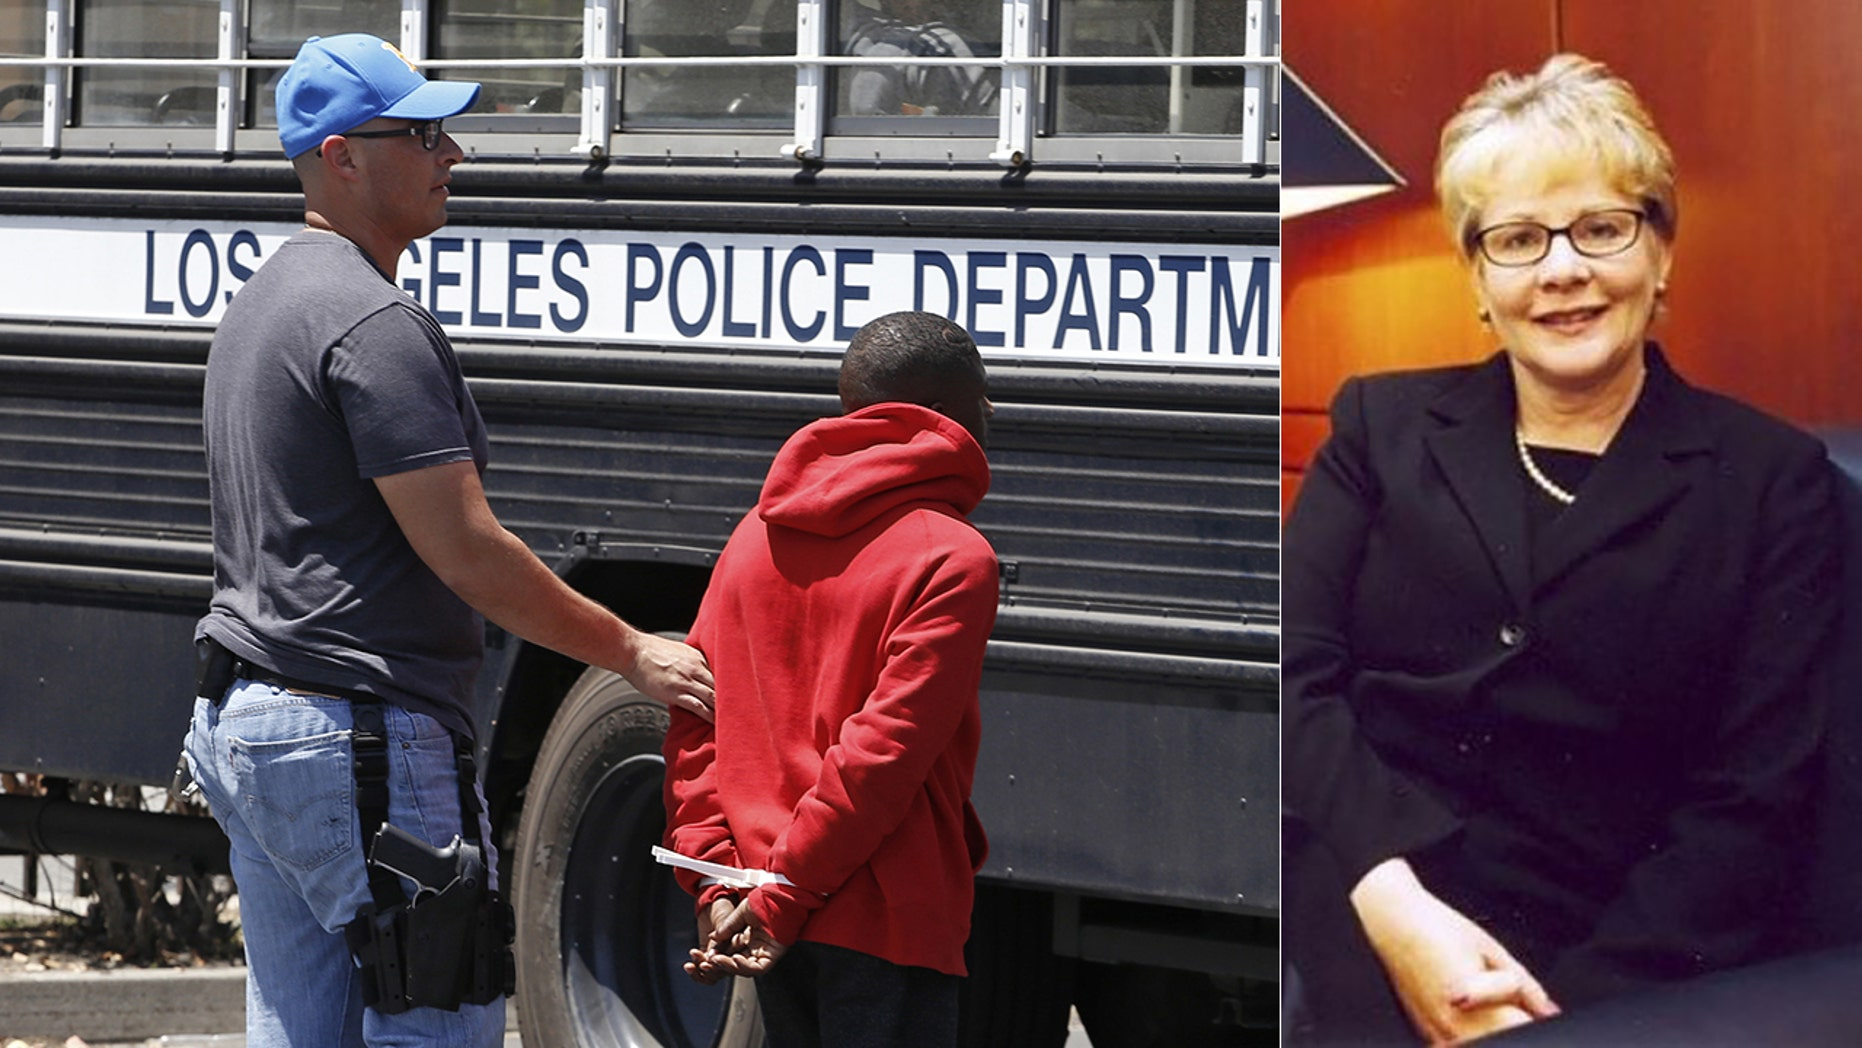 Los Angeles has been precluded from enforcing most of its '90s-era, contentious gang injunctions, a federal judge has ruled.